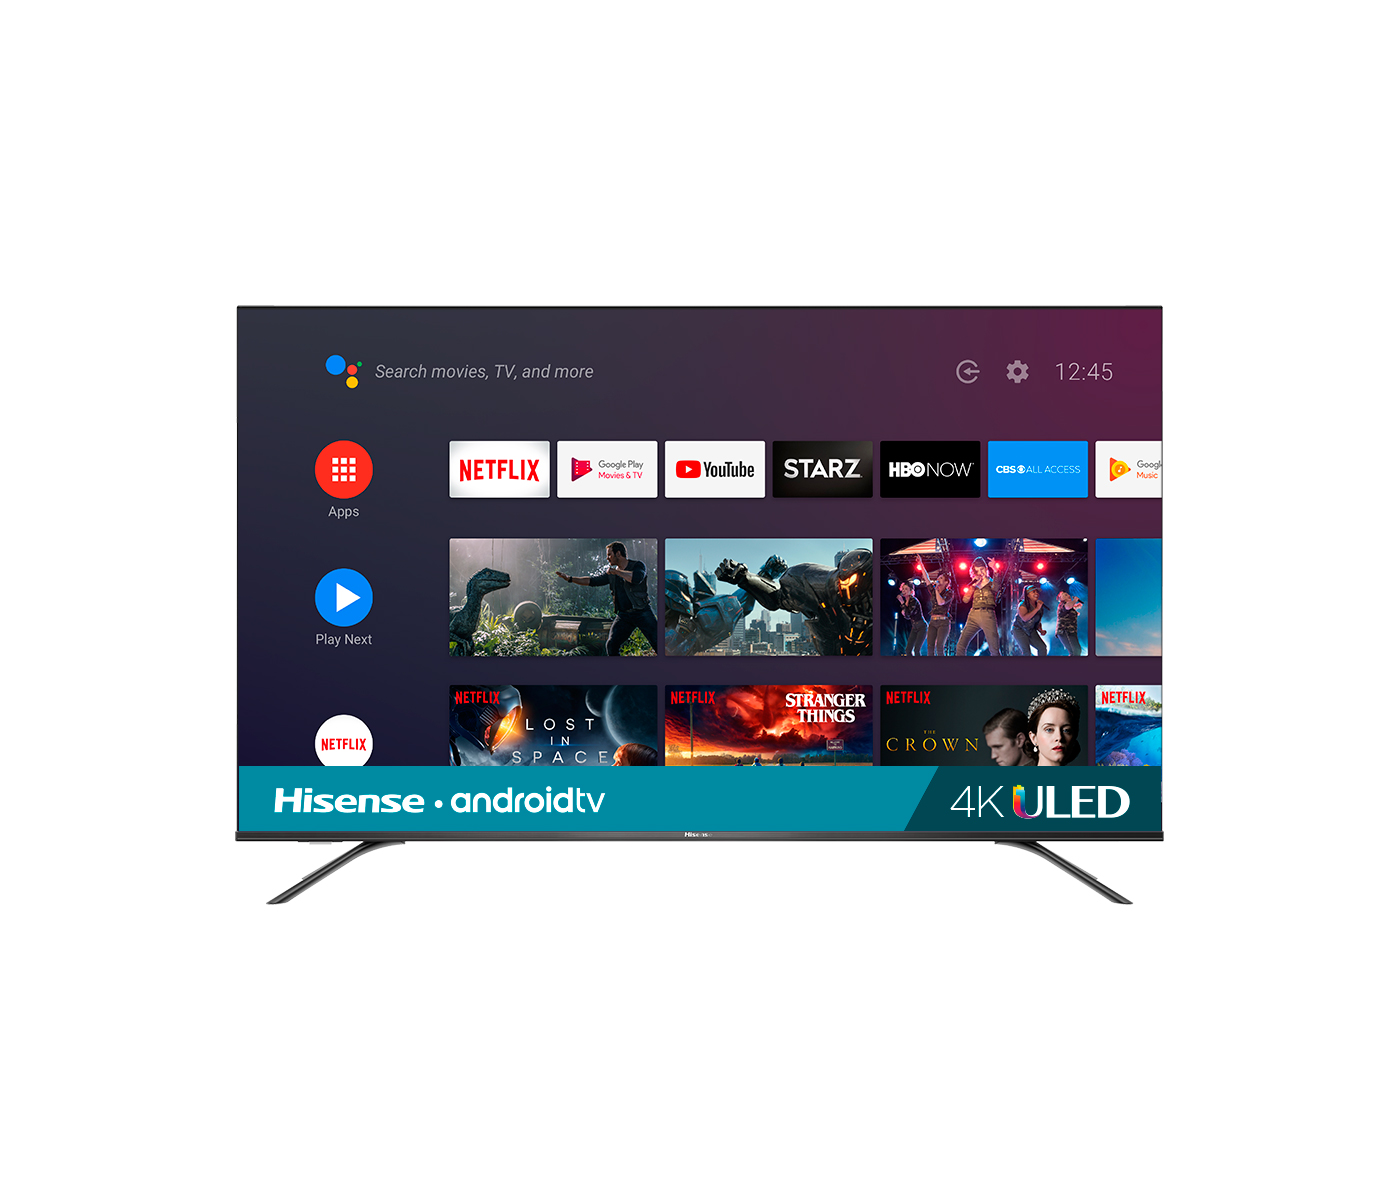 Hisense's latest TVs have 4K and are powered by Android TV